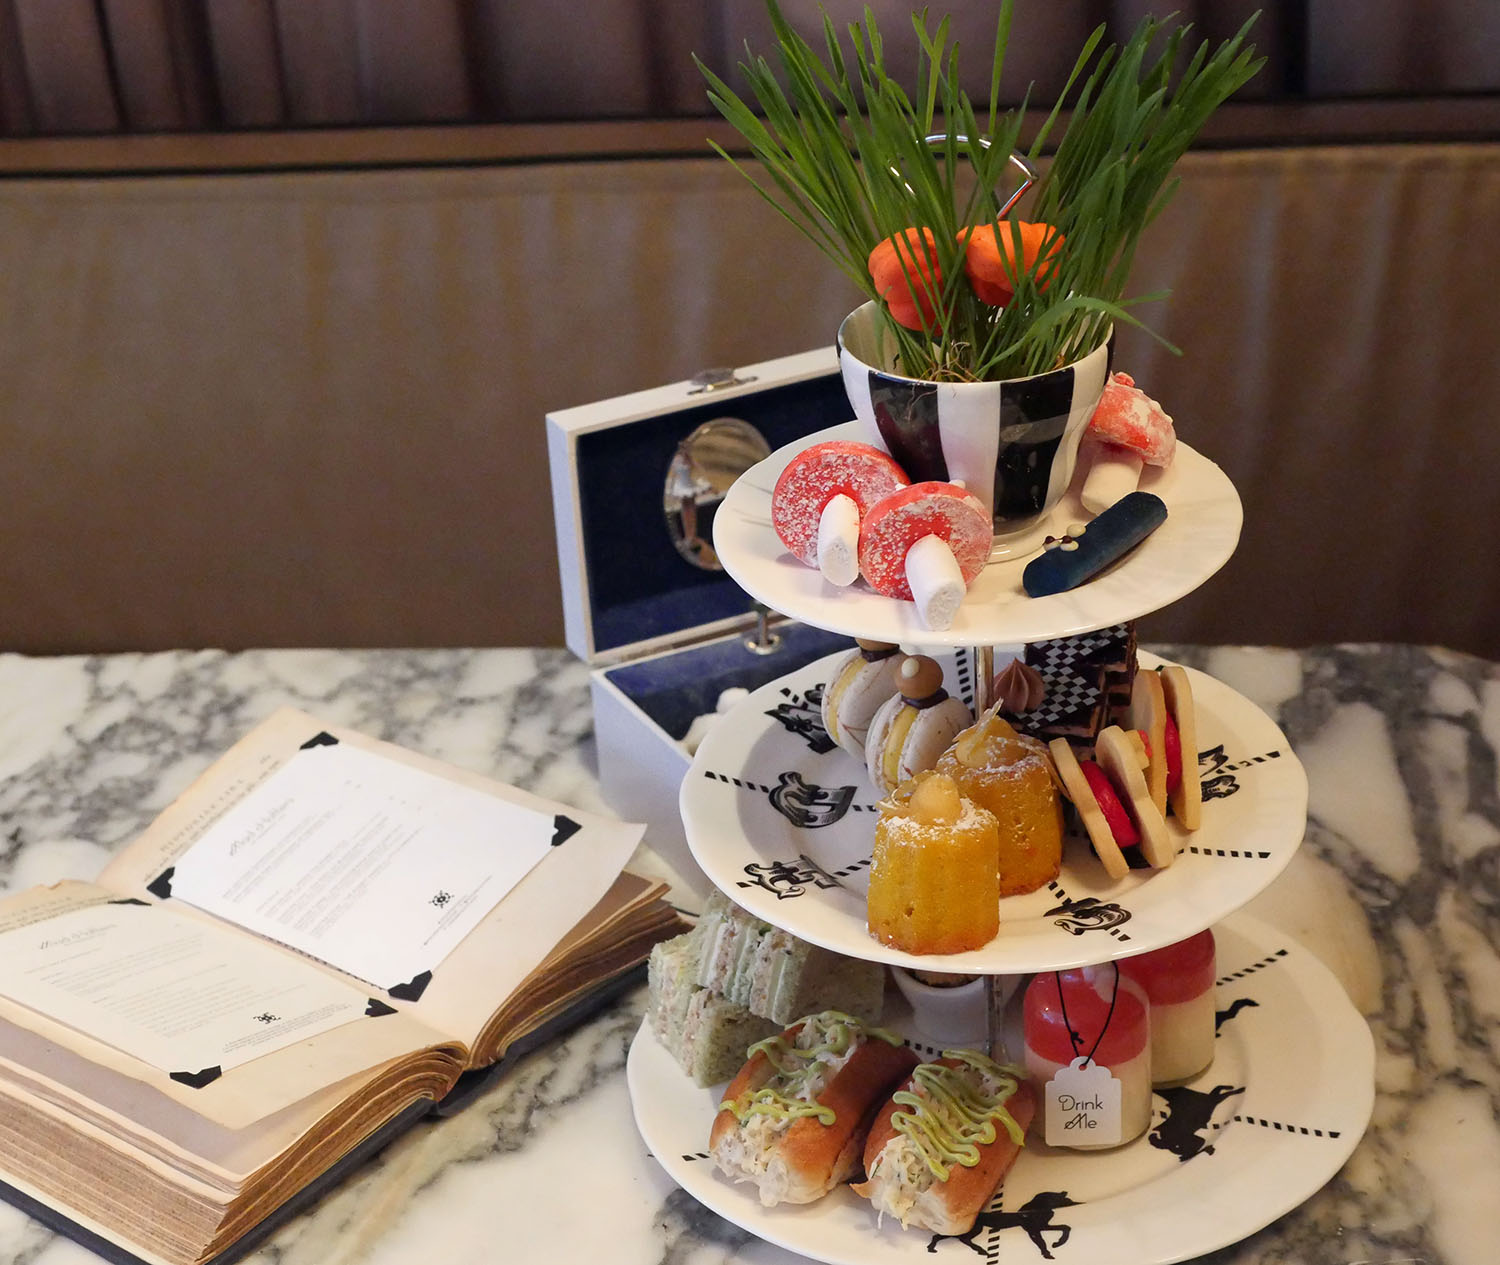 Afternoon Tea at the Sanderson Hotel